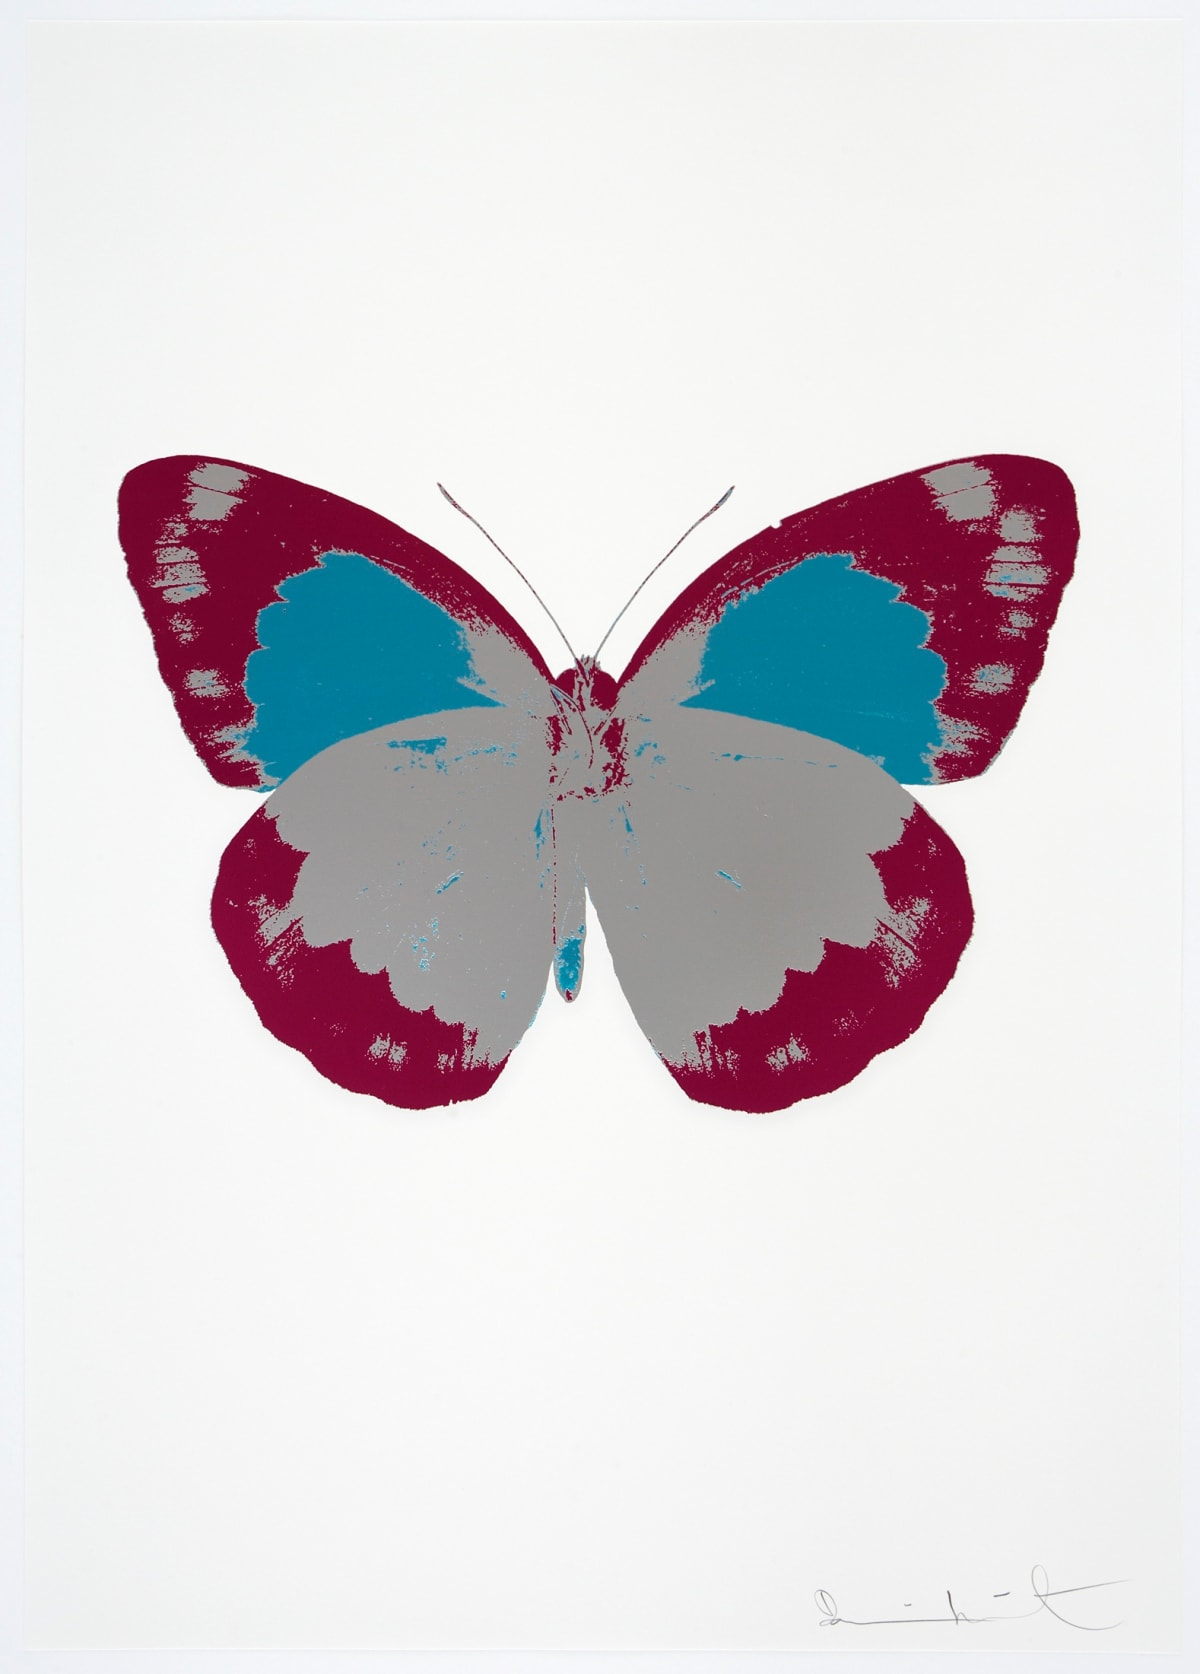 Damien Hirst The Souls II - Silver Gloss/Fuchsia Pink/Topaz, 2010 3 colour foil block on 300gsm Arches 88 archival paper. Signed and numbered. Published by Paul Stolper and Other Criteria 72 x 51cm OC7879 / 658-62 Edition of 15